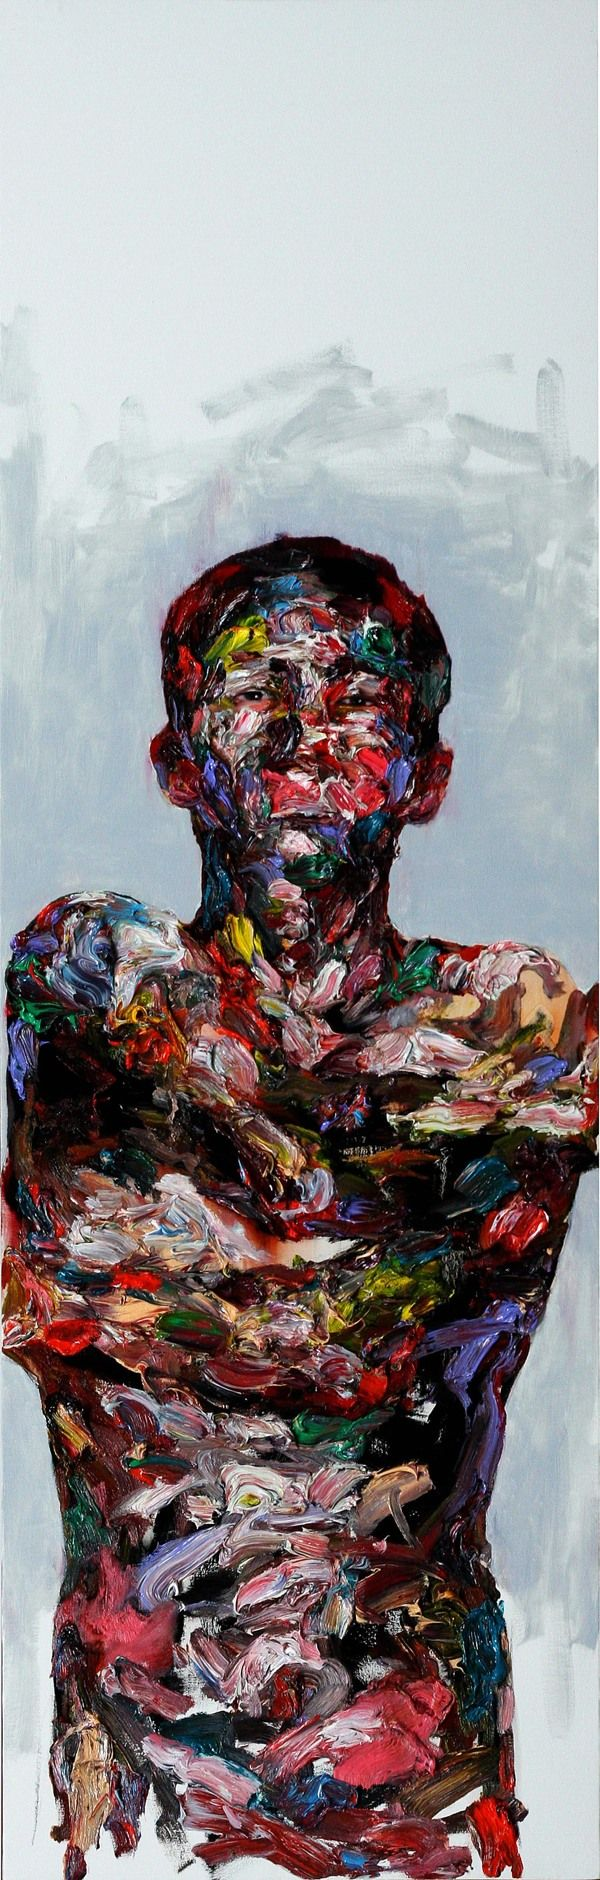 9.-ABSTRACT-PAINTINGS-BY-KWANGHO-SHIN.jpg (600×1880)